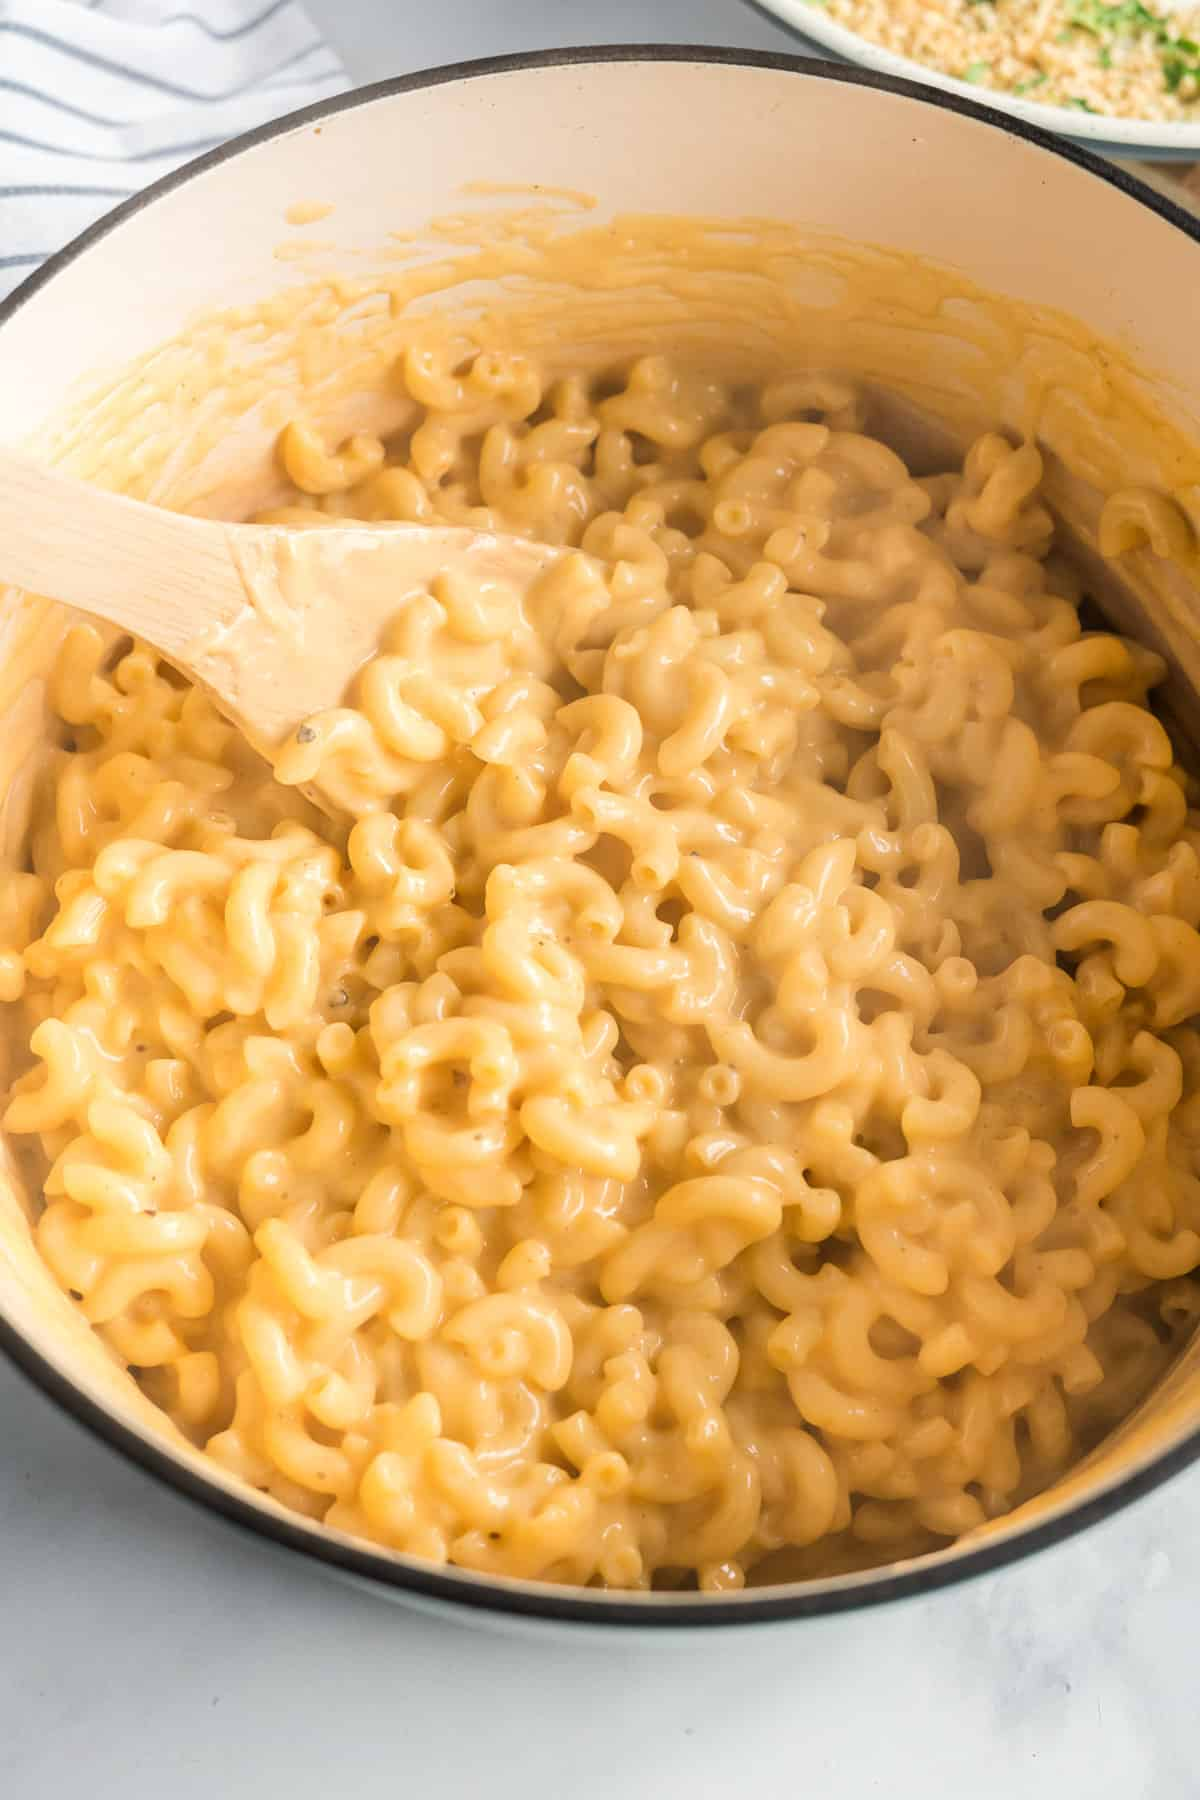 The creamy pasta and cheese mixture after it is combined in the Dutch oven.